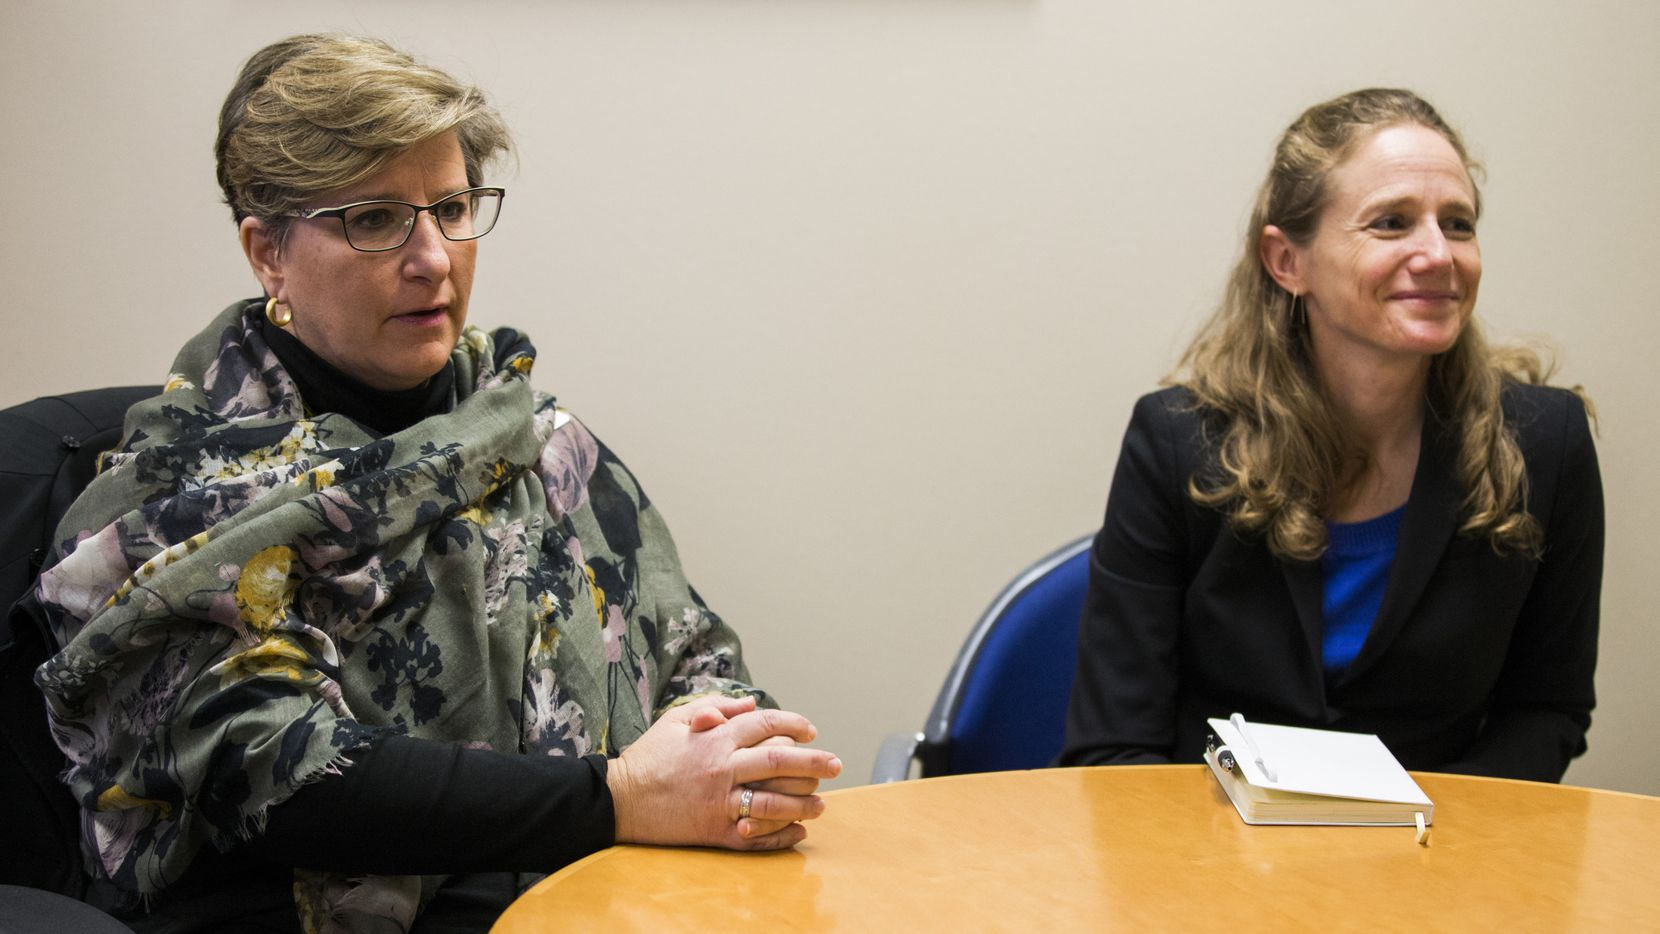 Suzy Cop (left), executive director at International Rescue Committee in Dallas, and Shayna Kessler, senior planner at the Vera Institute's Center on Immigration and Justice, discuss a deportation defense fund on Tuesday, February 11, 2020 at International Rescue Committee in Dallas. (Ashley Landis/The Dallas Morning News)